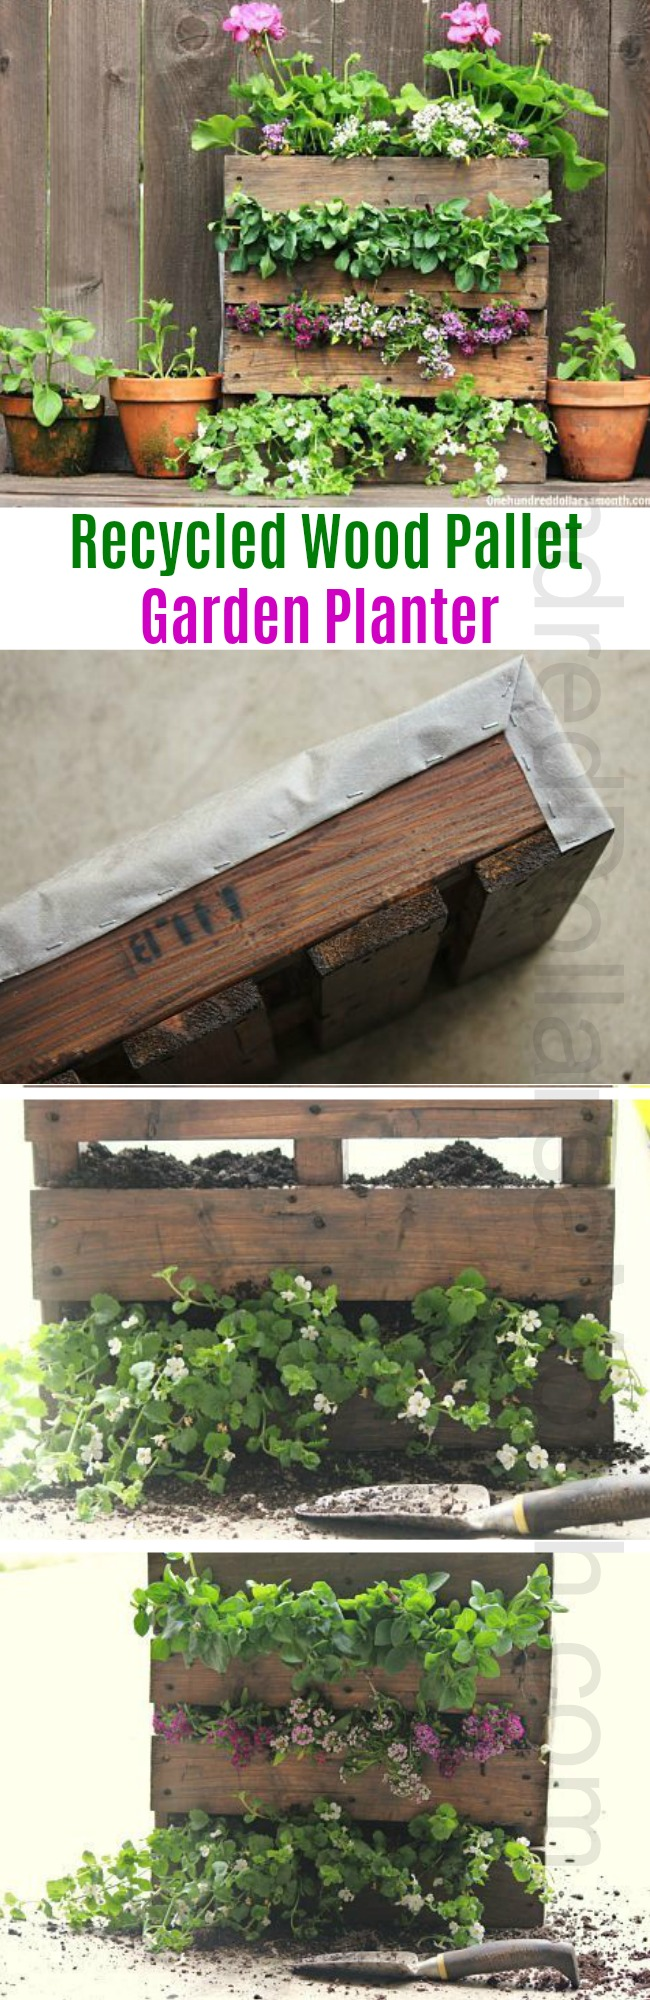 How to Plant a Flower Garden Using a Recycled Wood Pallet